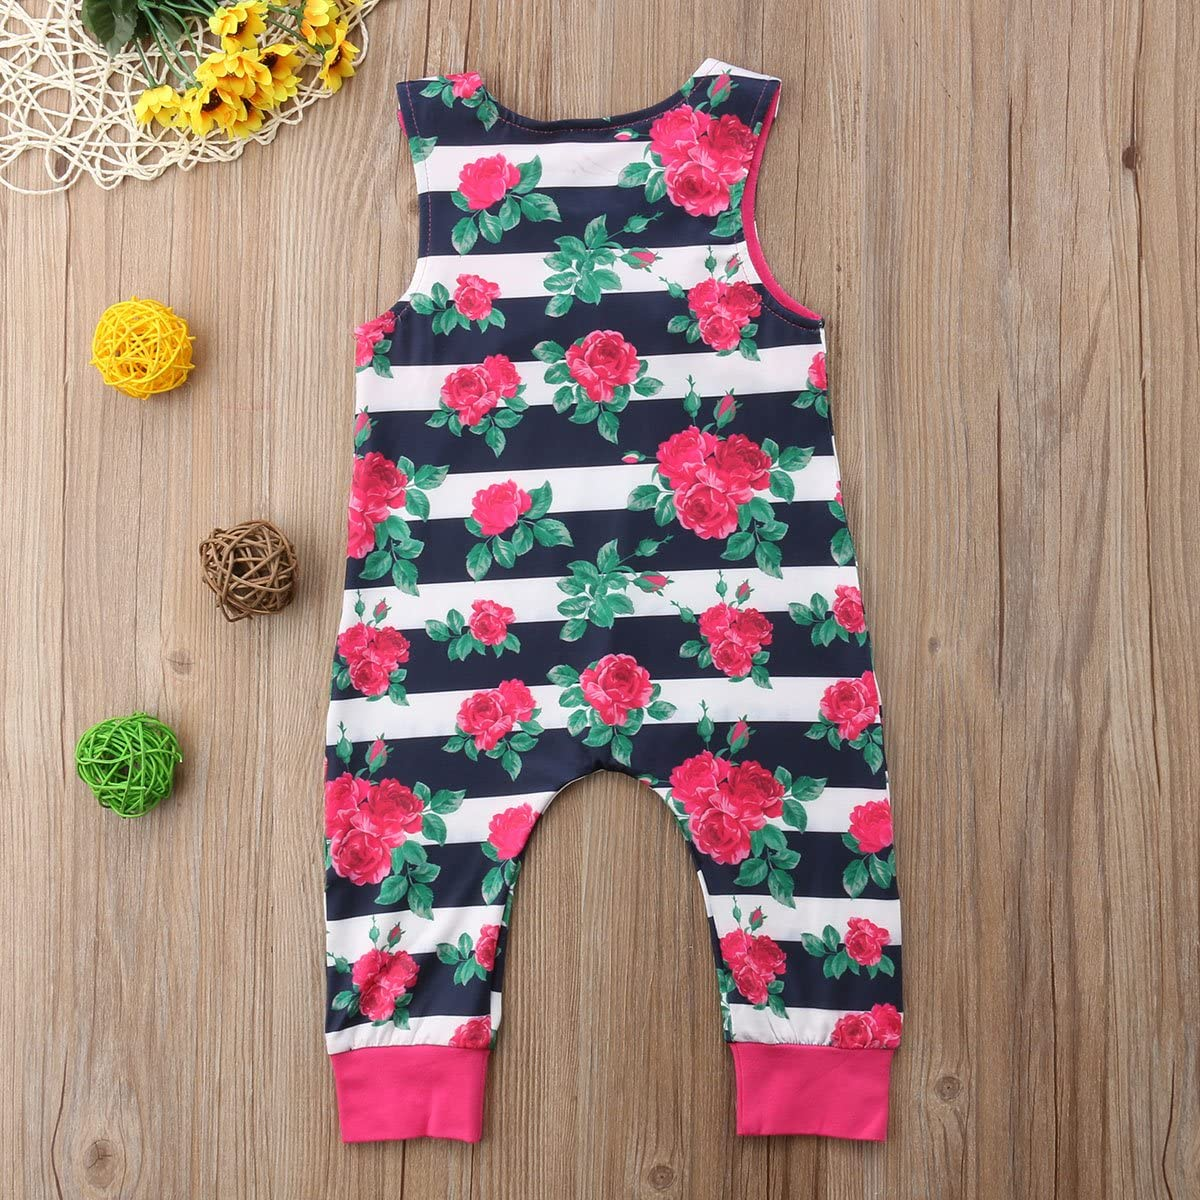 Toddler Baby Girls Floral Sleeveless One-Pieces Jumpsuit Summer Romper Outfit